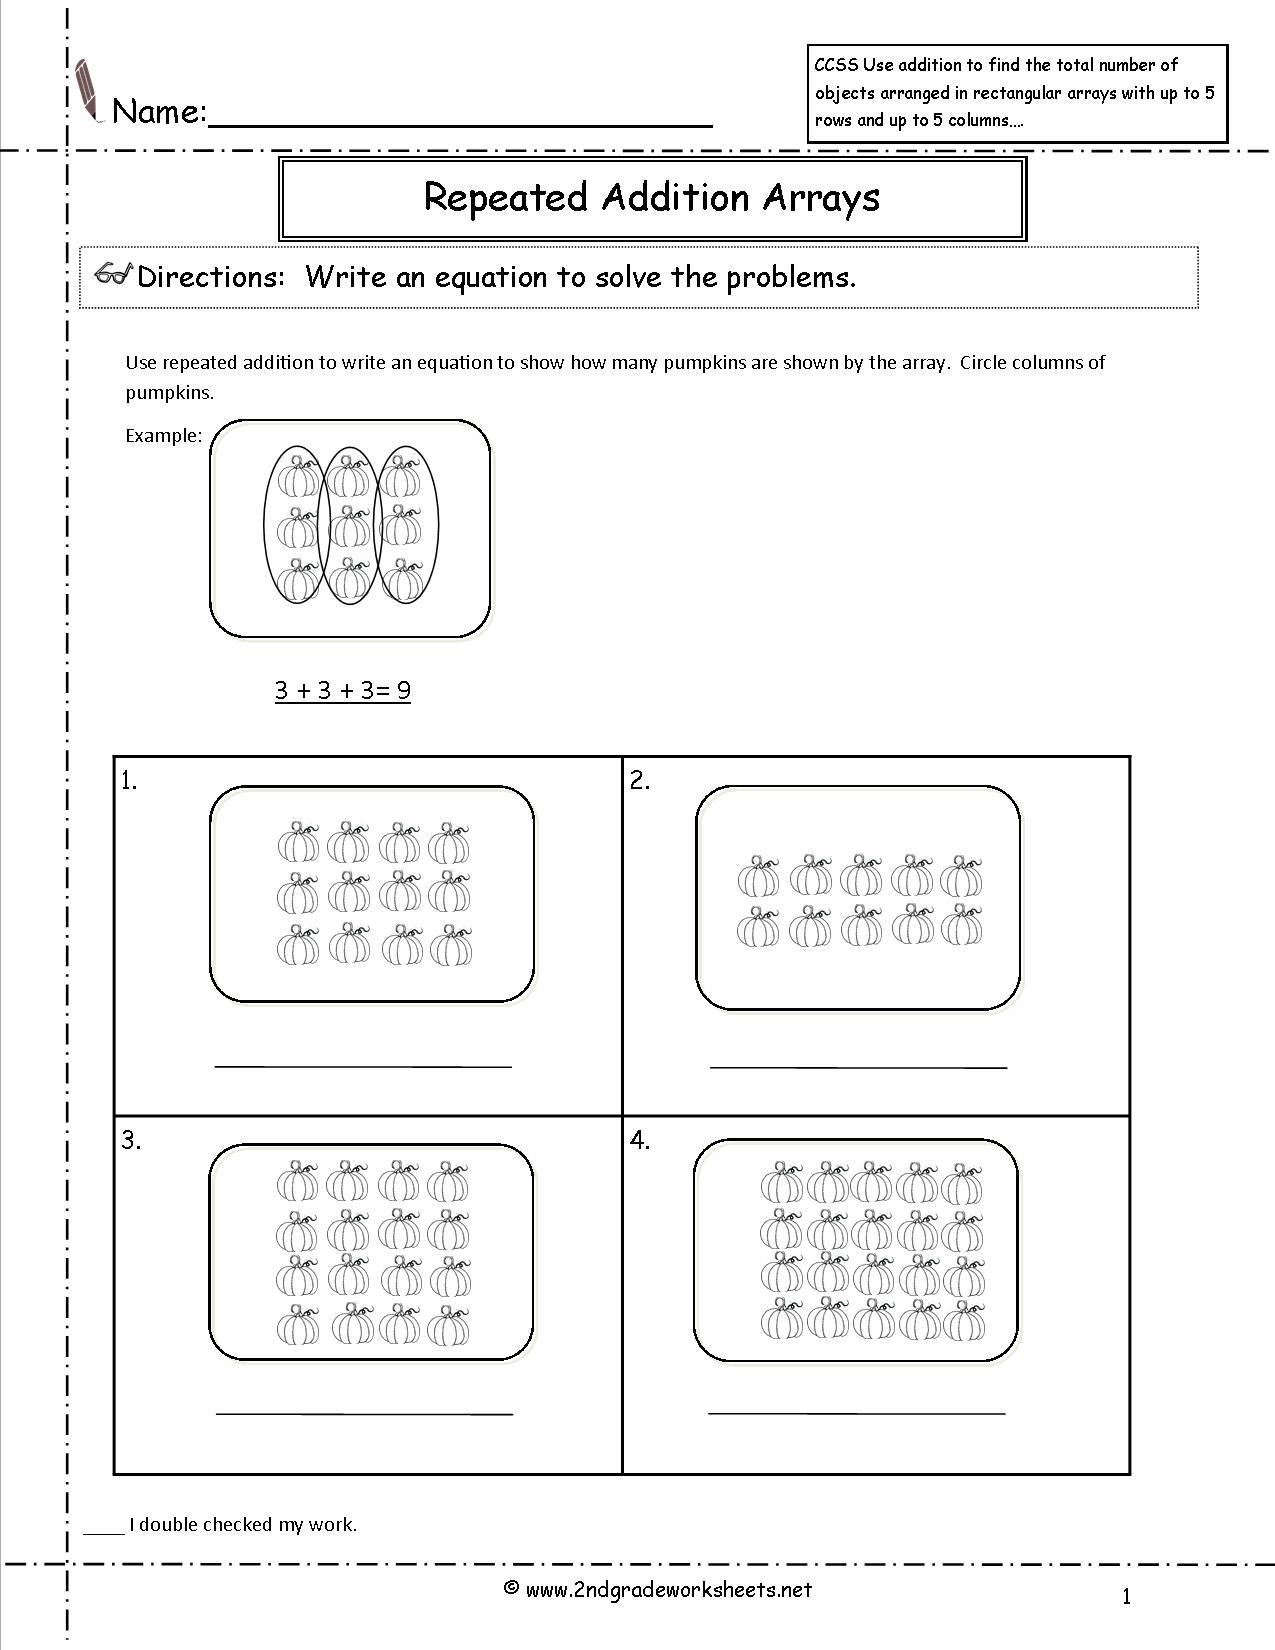 16 Best Images Of 2nd Grade Arrays Repeated Addition Worksheets